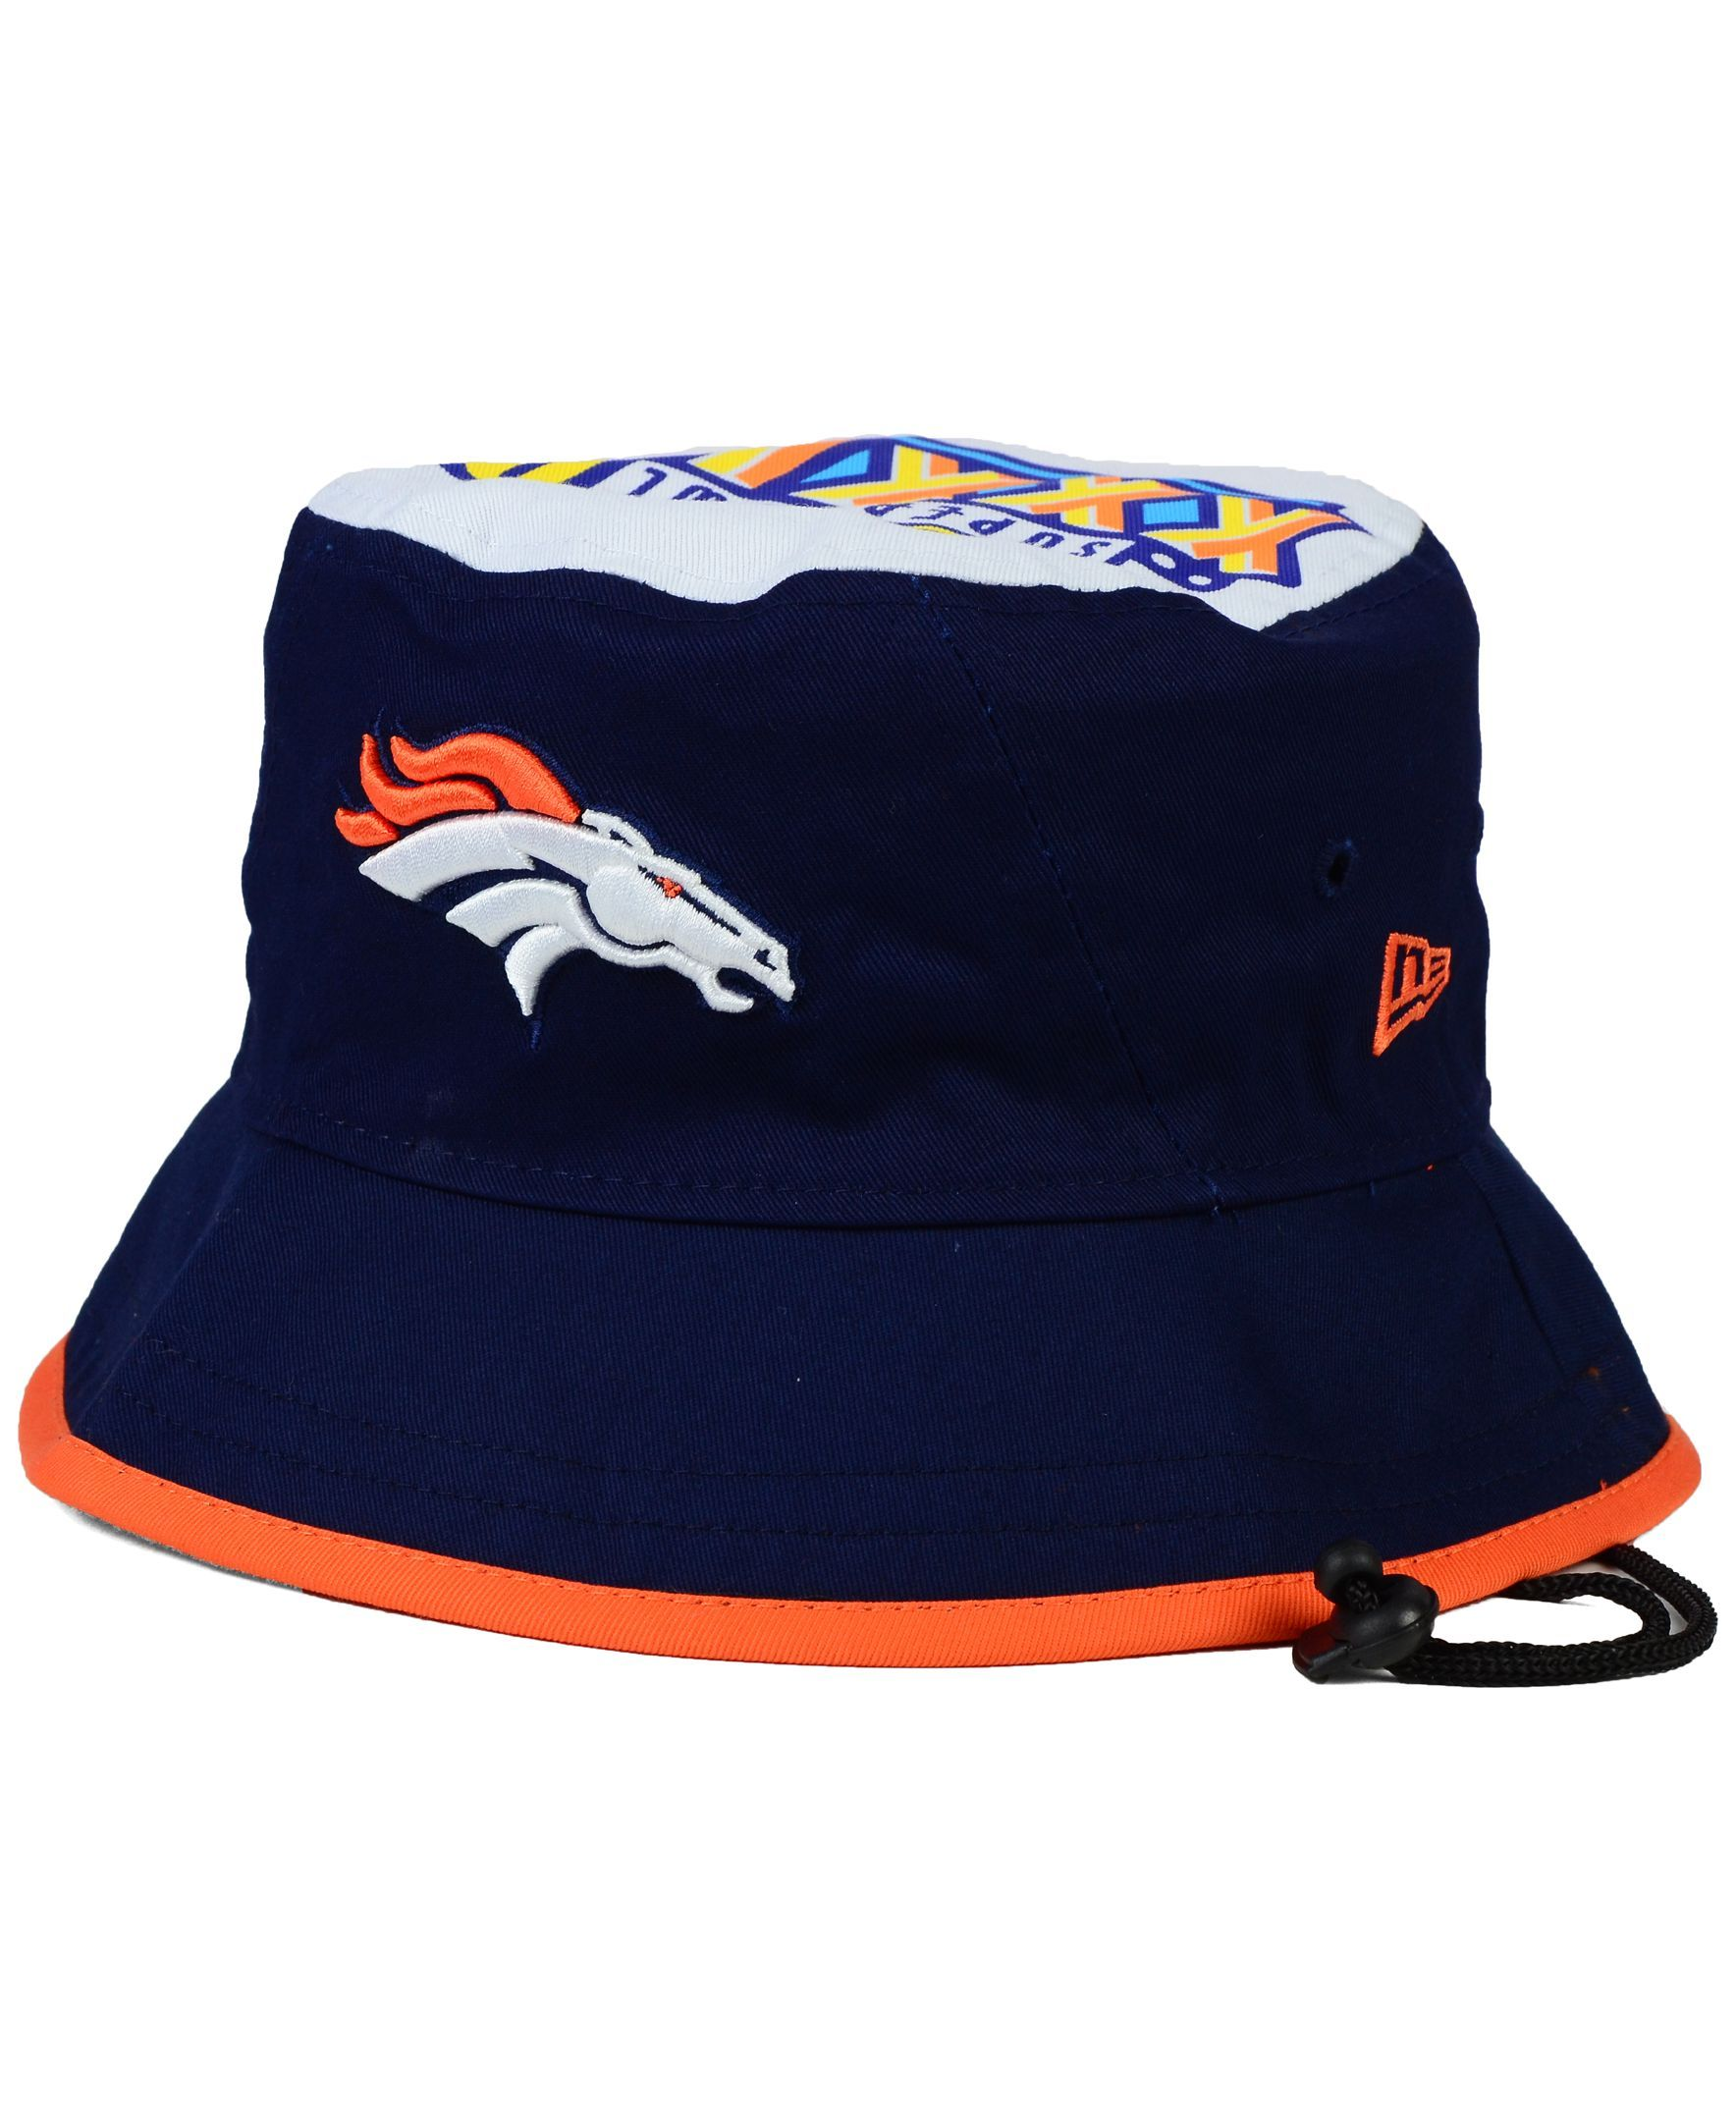 New Era Denver Broncos Traveler Bucket Hat